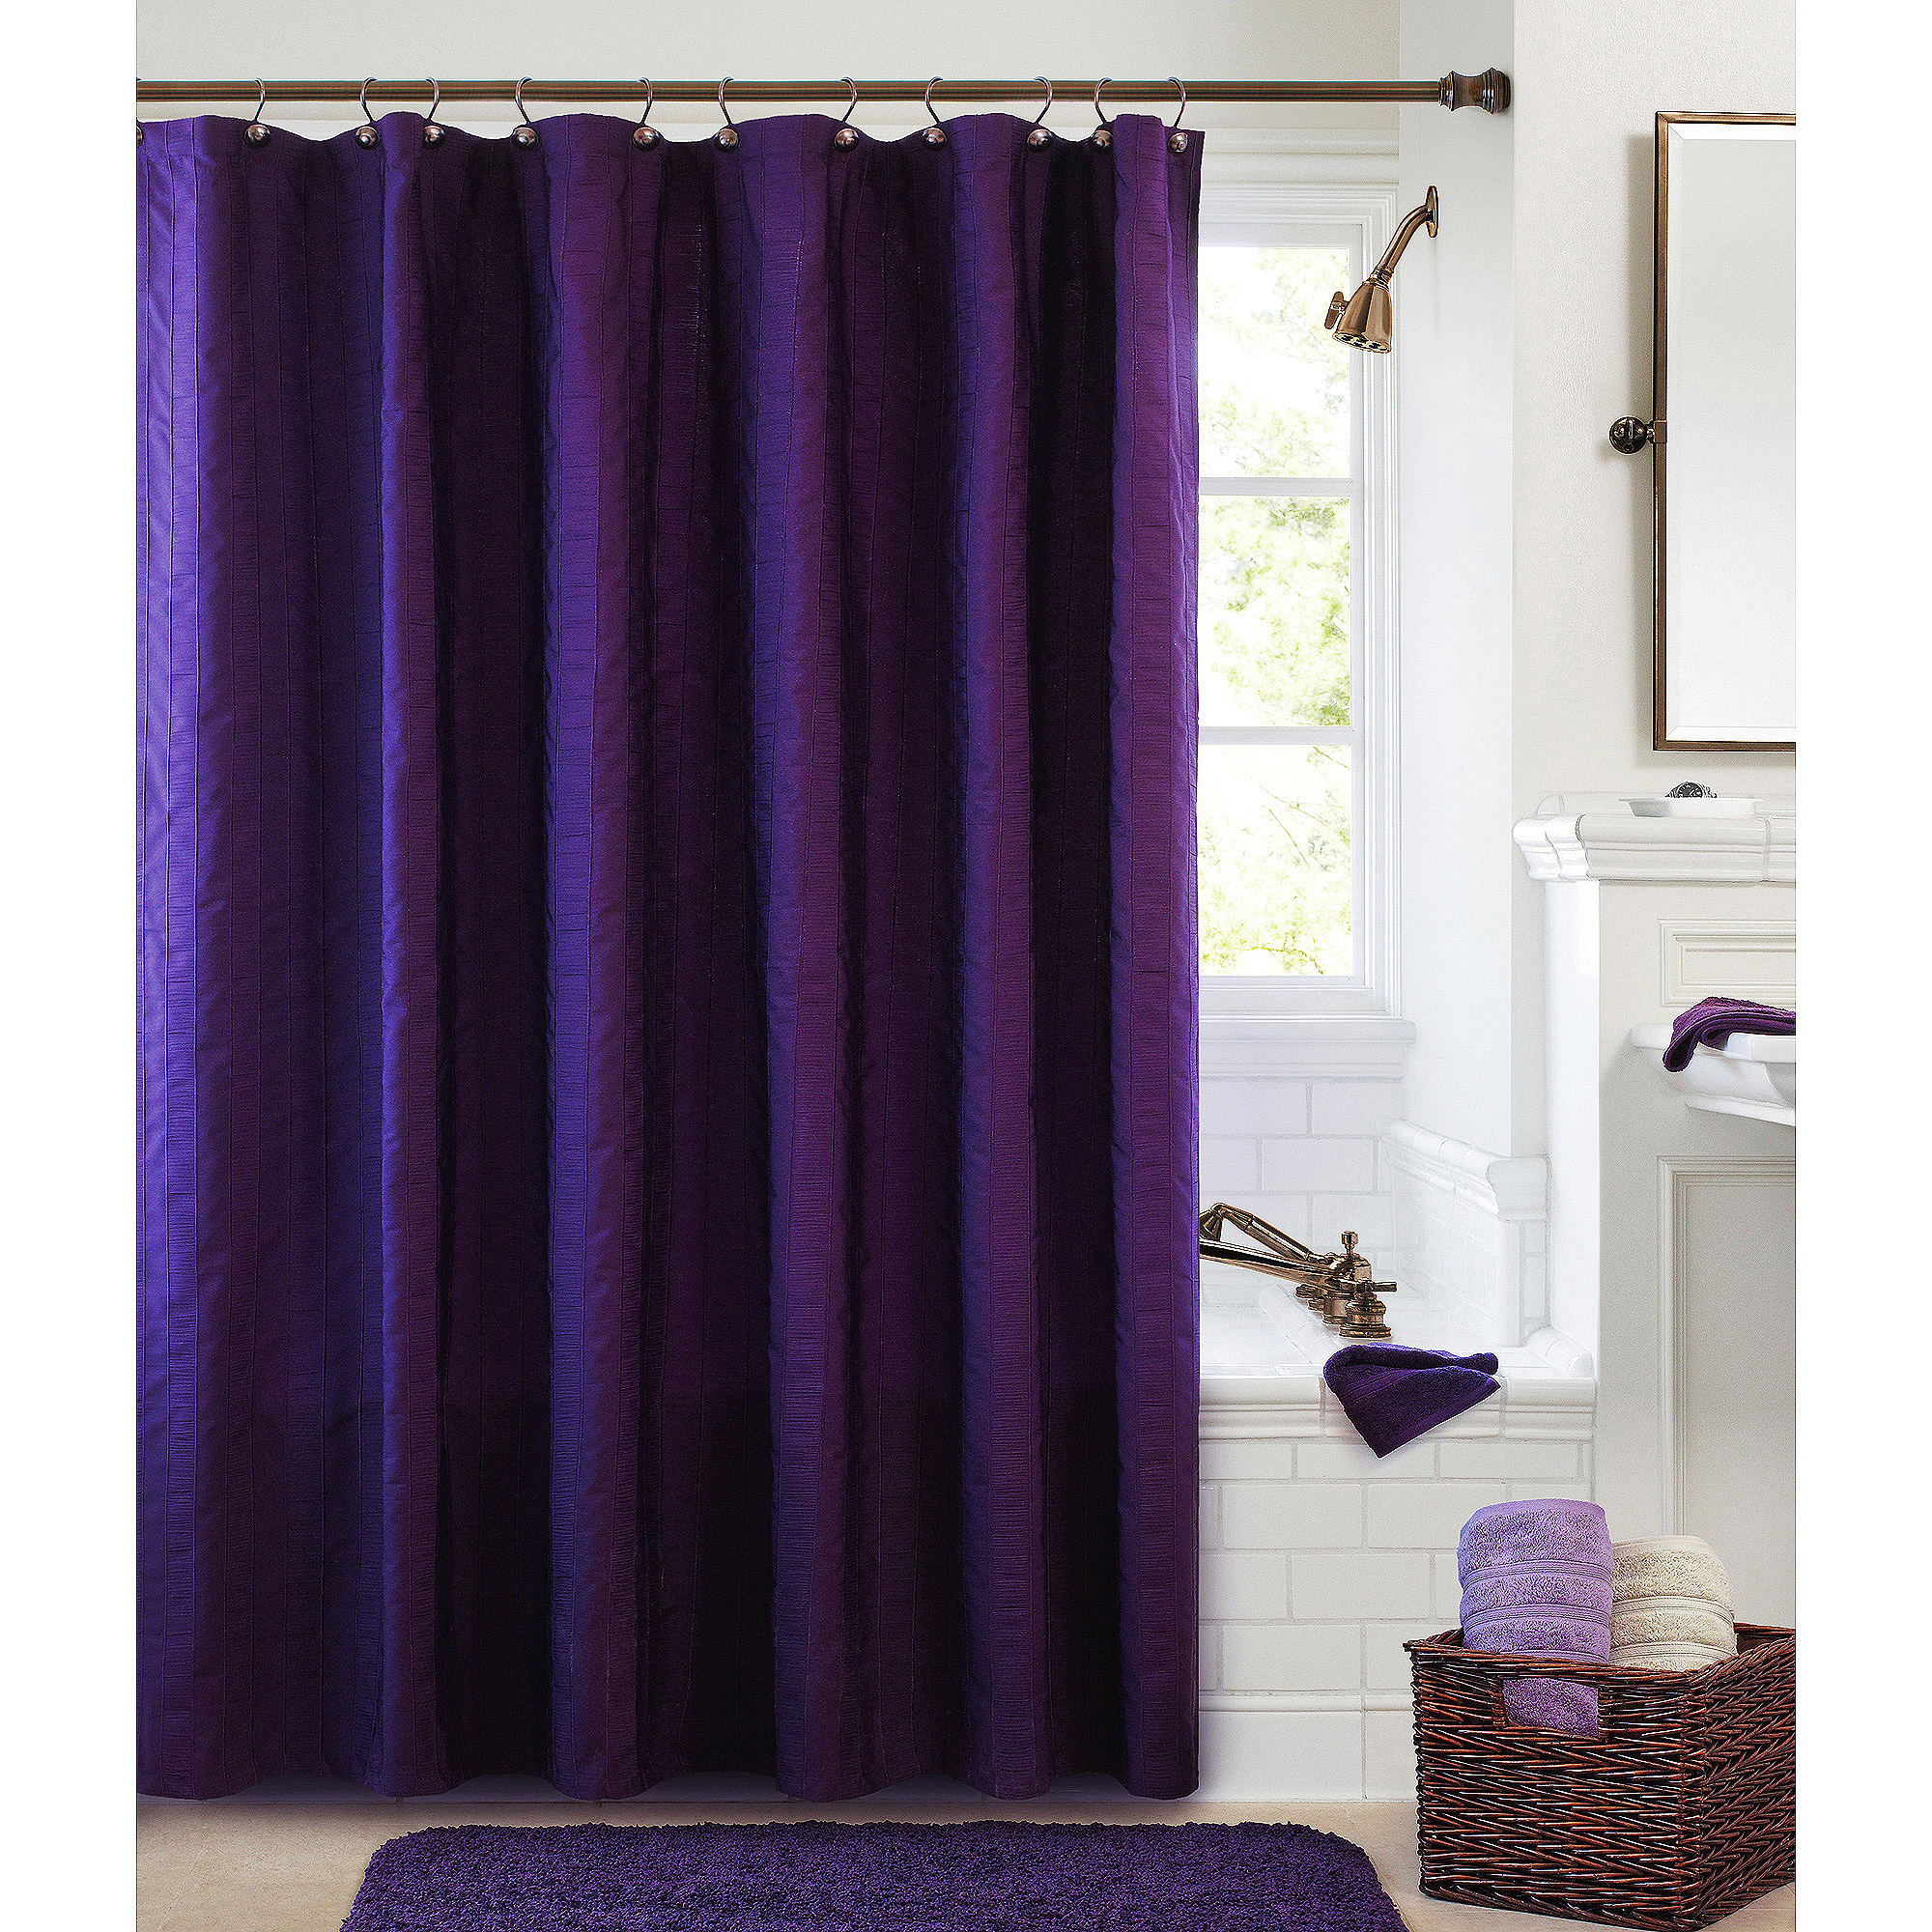 Bathroom Wonderful Christmas Shower Curtains And Towels intended for proportions 2000 X 2000